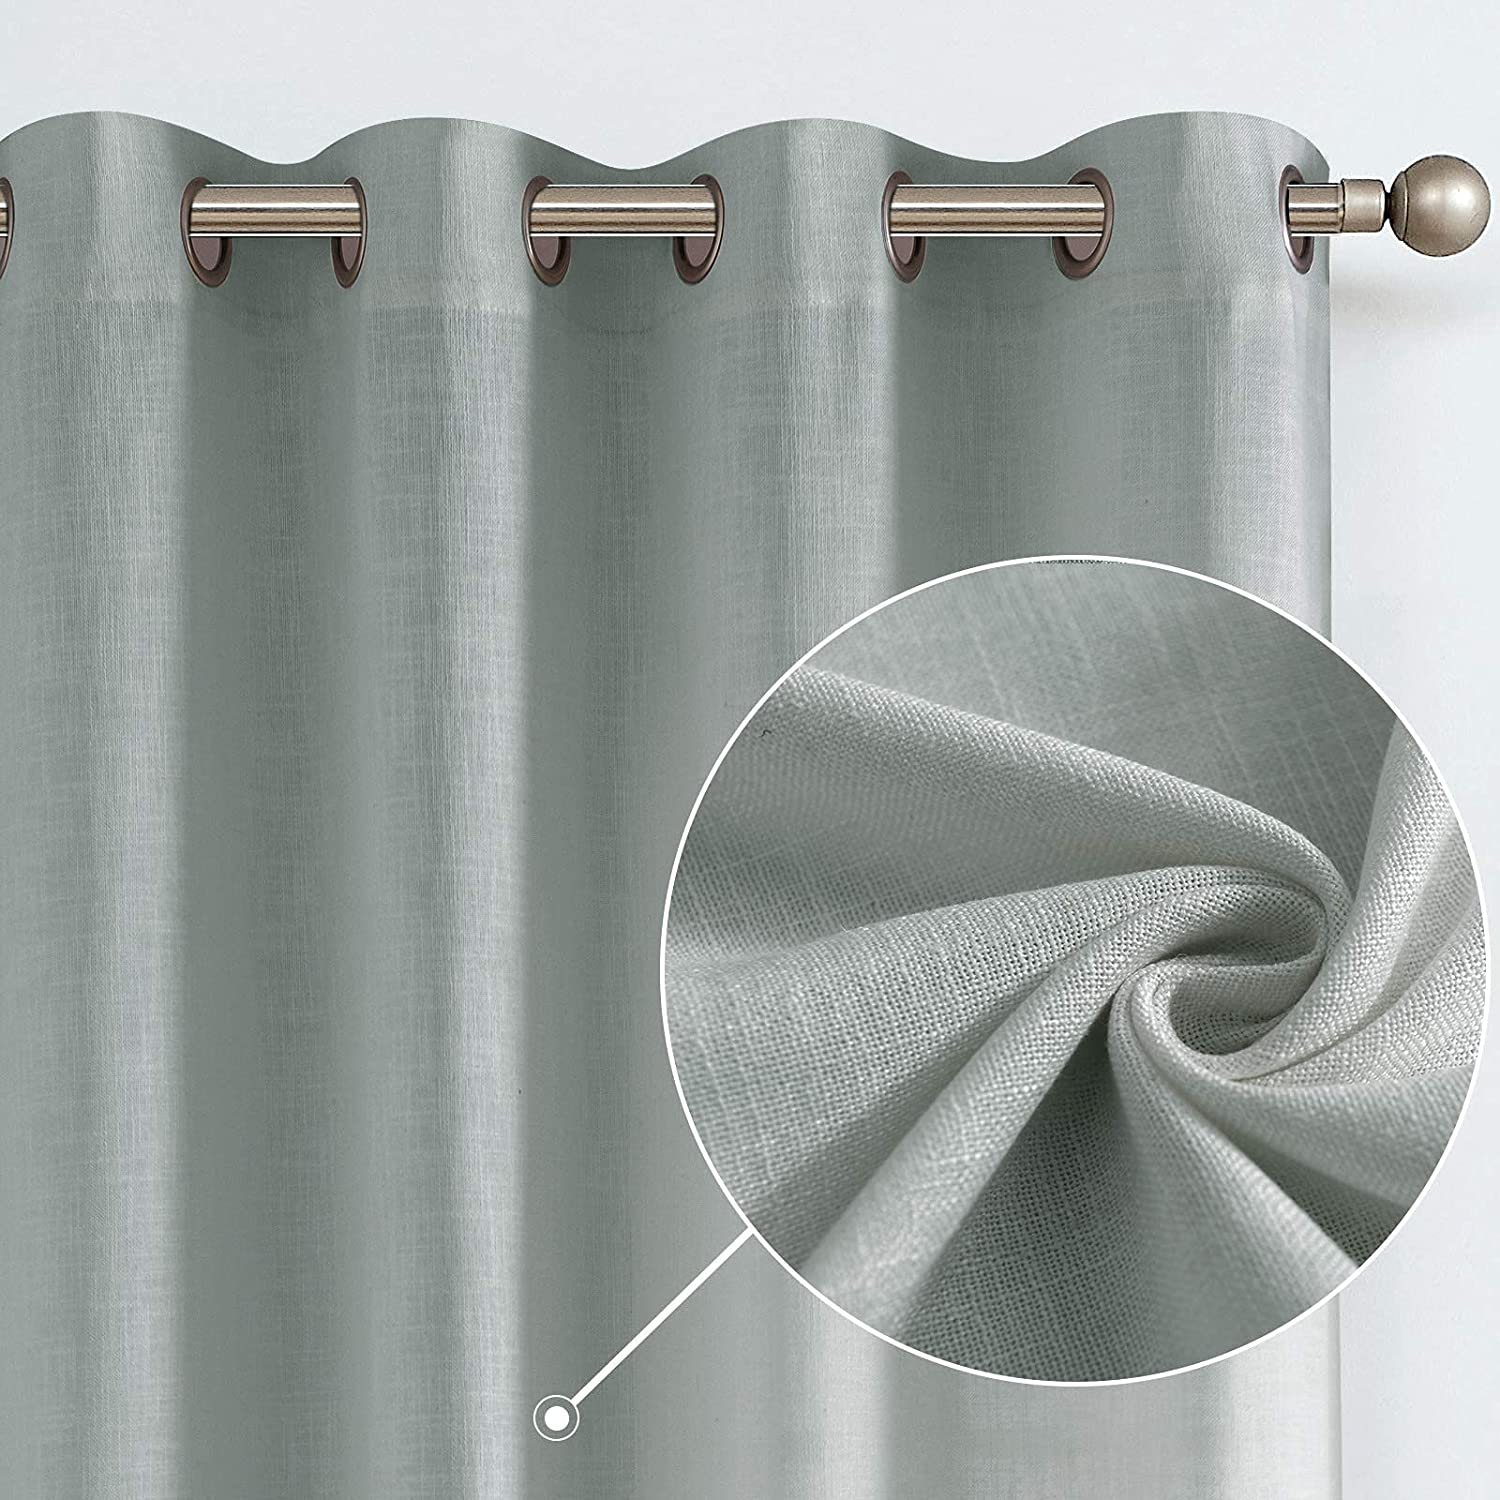 Linen Curtains for Living Room Drapes Flax Window Curtain Panels for Bedroom 1 Pair 84